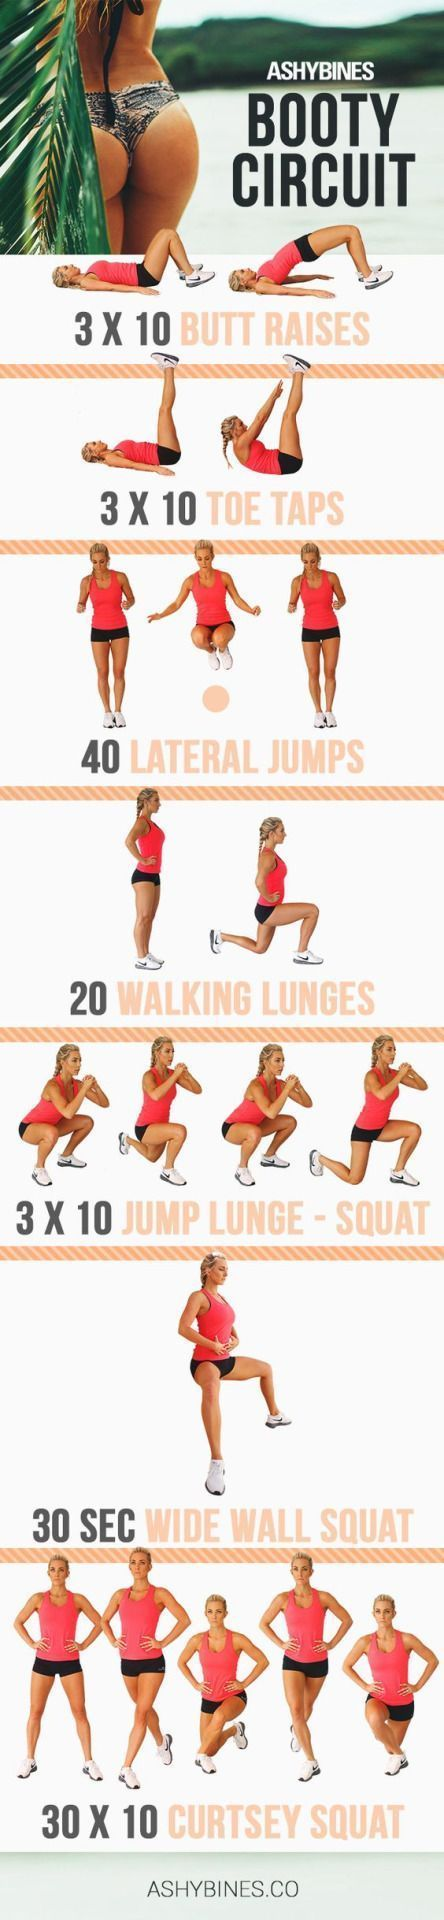 #thecurtsey #curtsey #squats #best #are #thesquats are the best!